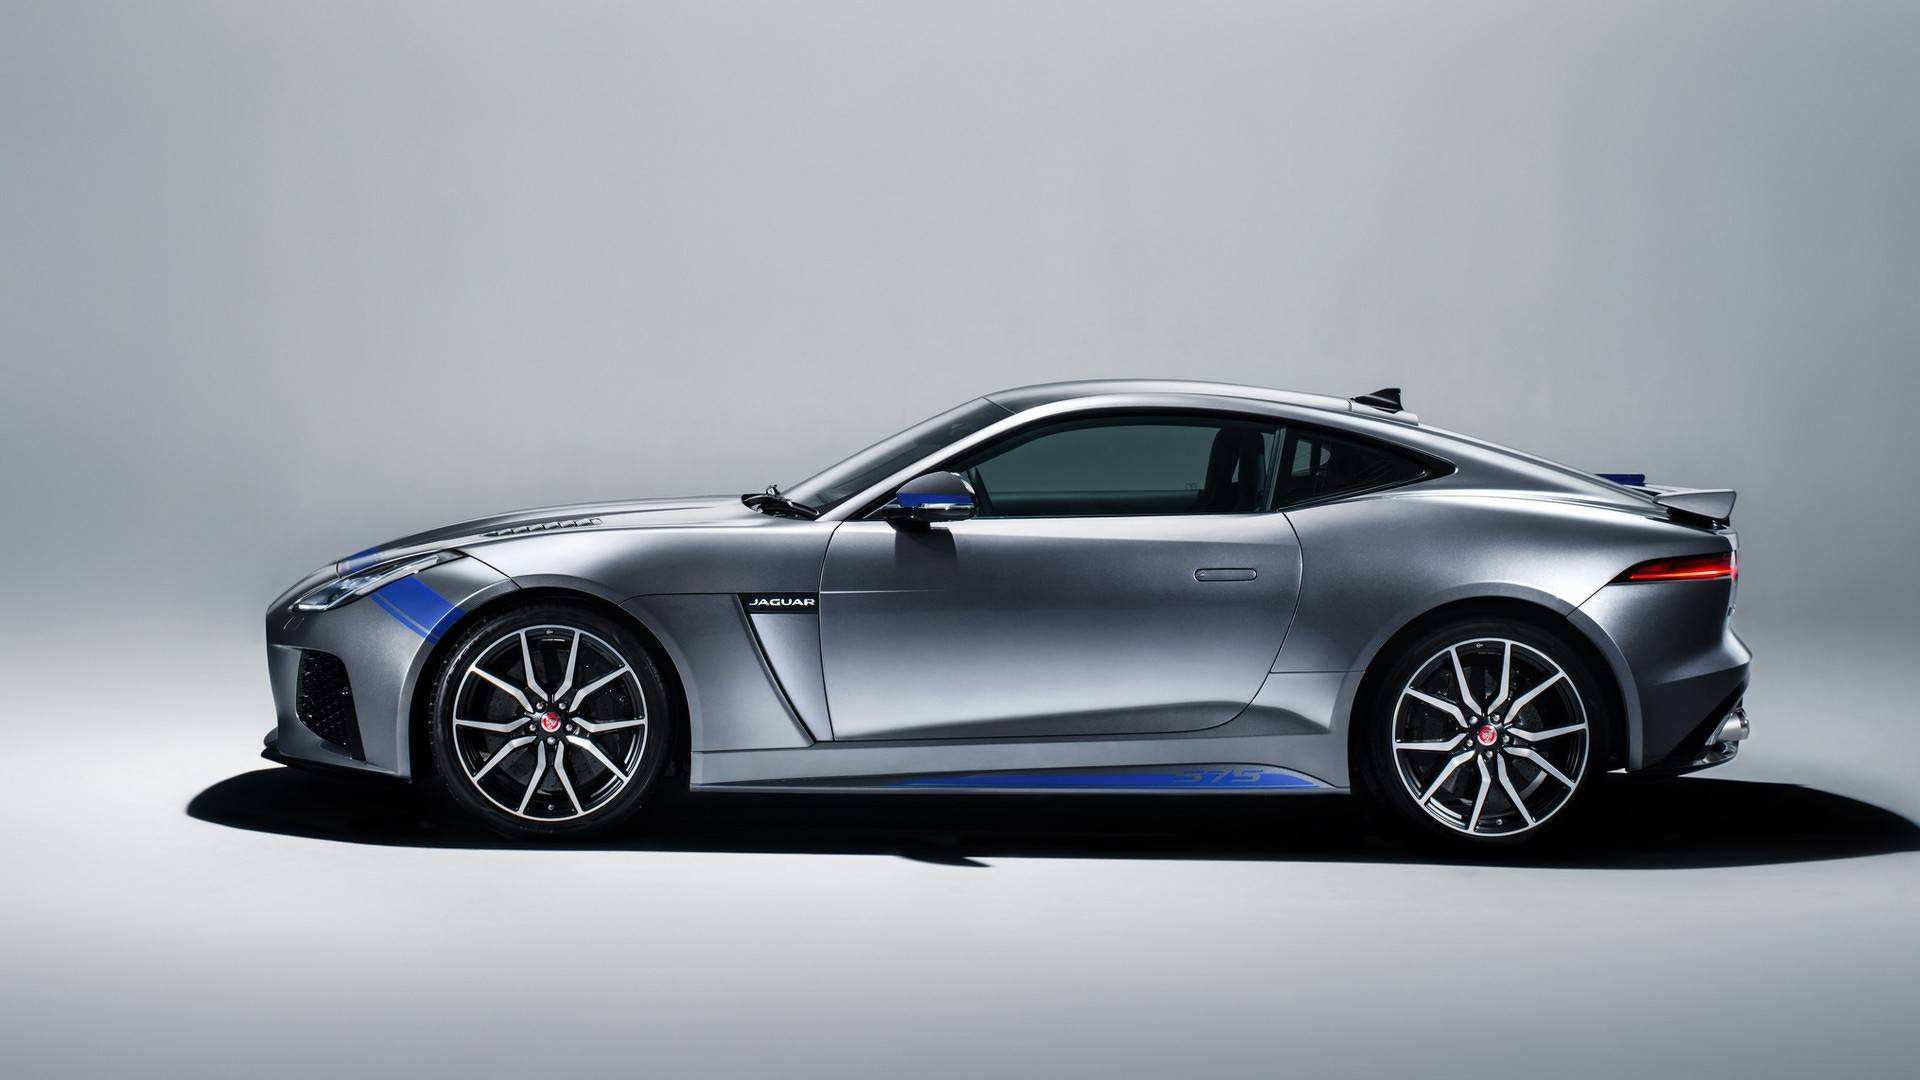 24 Best Review Jaguar F Type 2020 Exterior New Concept by Jaguar F Type 2020 Exterior